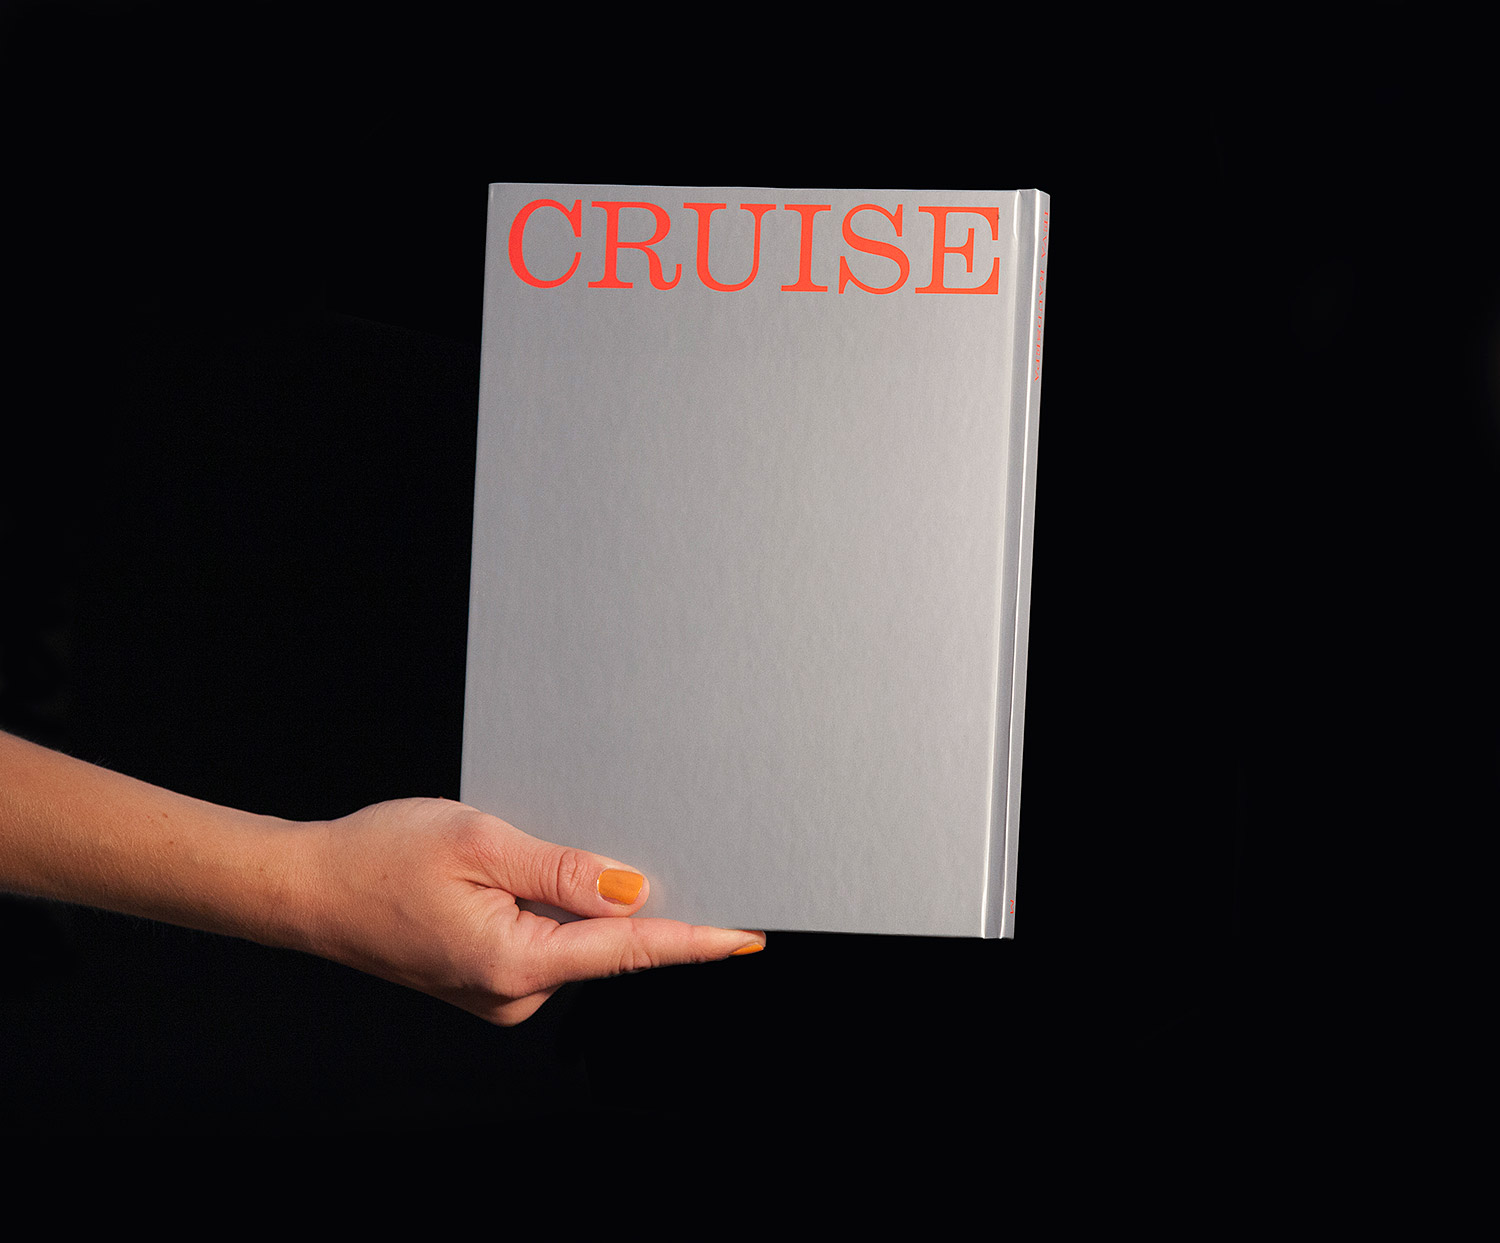 Cruise by Ieva Raudsepa, pub. by Milda Books